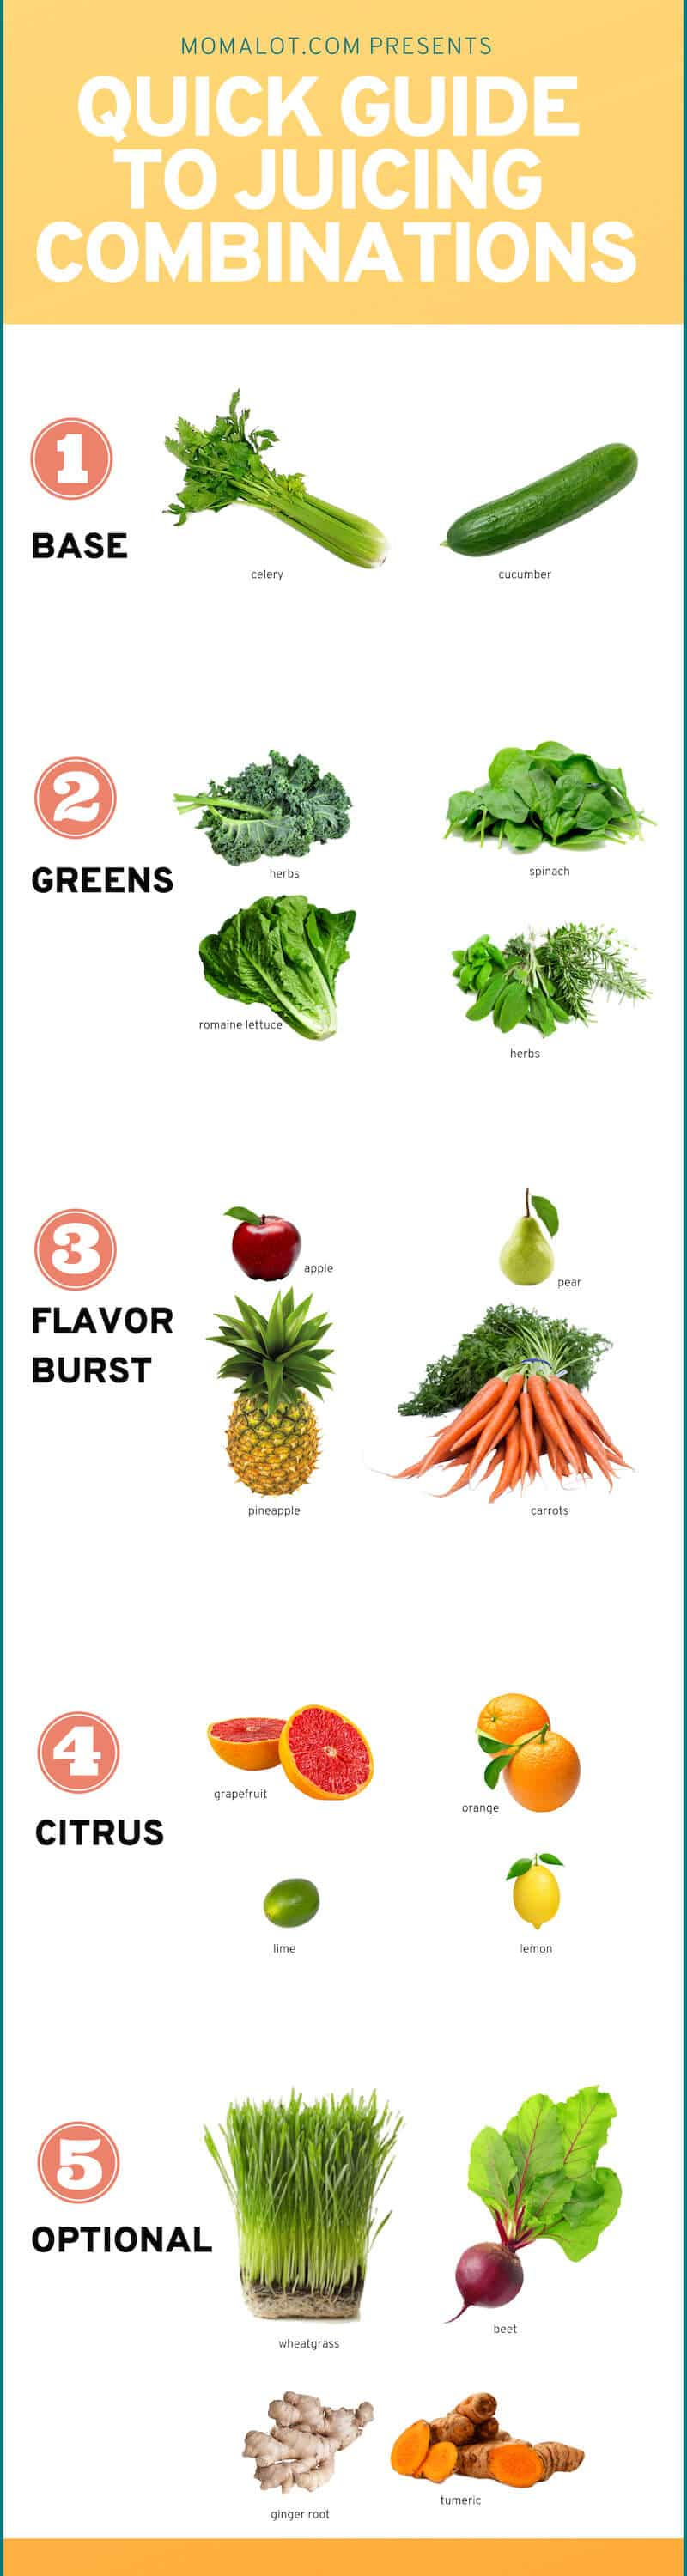 Create Juice Combinations That Won't Make You Gag Quick Reference Guide